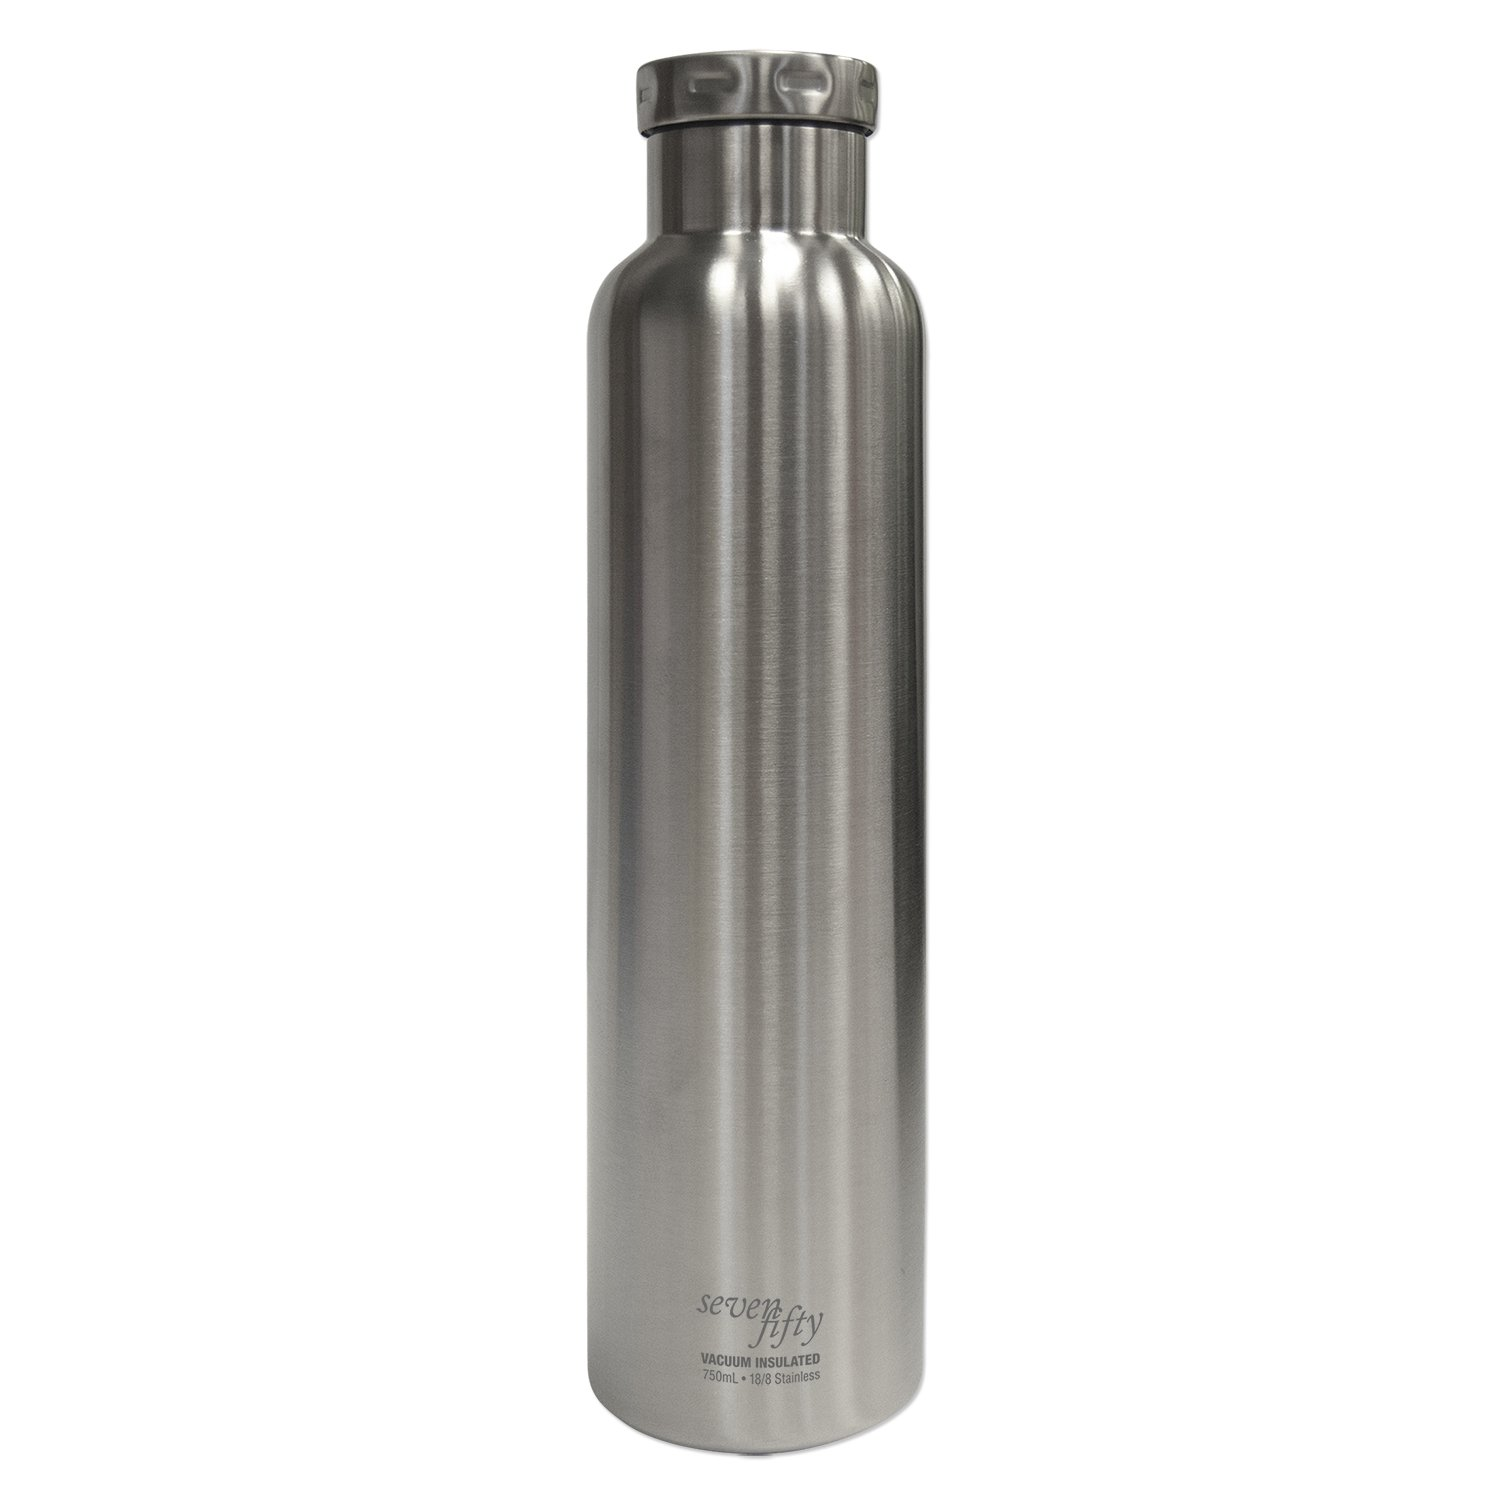 FIFTY/FIFTY Seven Fifty Chardonnay Vacuum-Insulated Stainless Steel Wine Growler - 750 mL Capacity